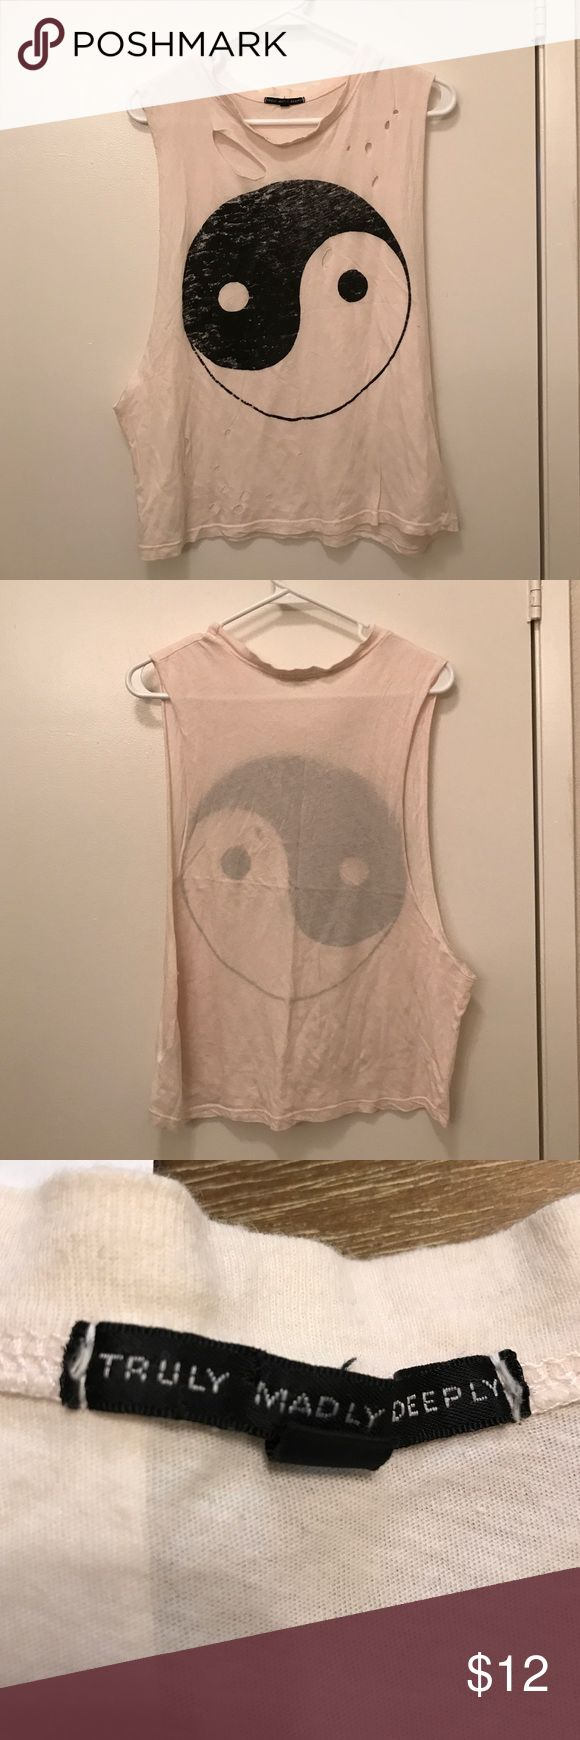 Muscle Tank Top Muscle tank top with a ying yang. Has holes on it (came like this). White and black colored. Size small. Urban Outfitters Tops Muscle Tees